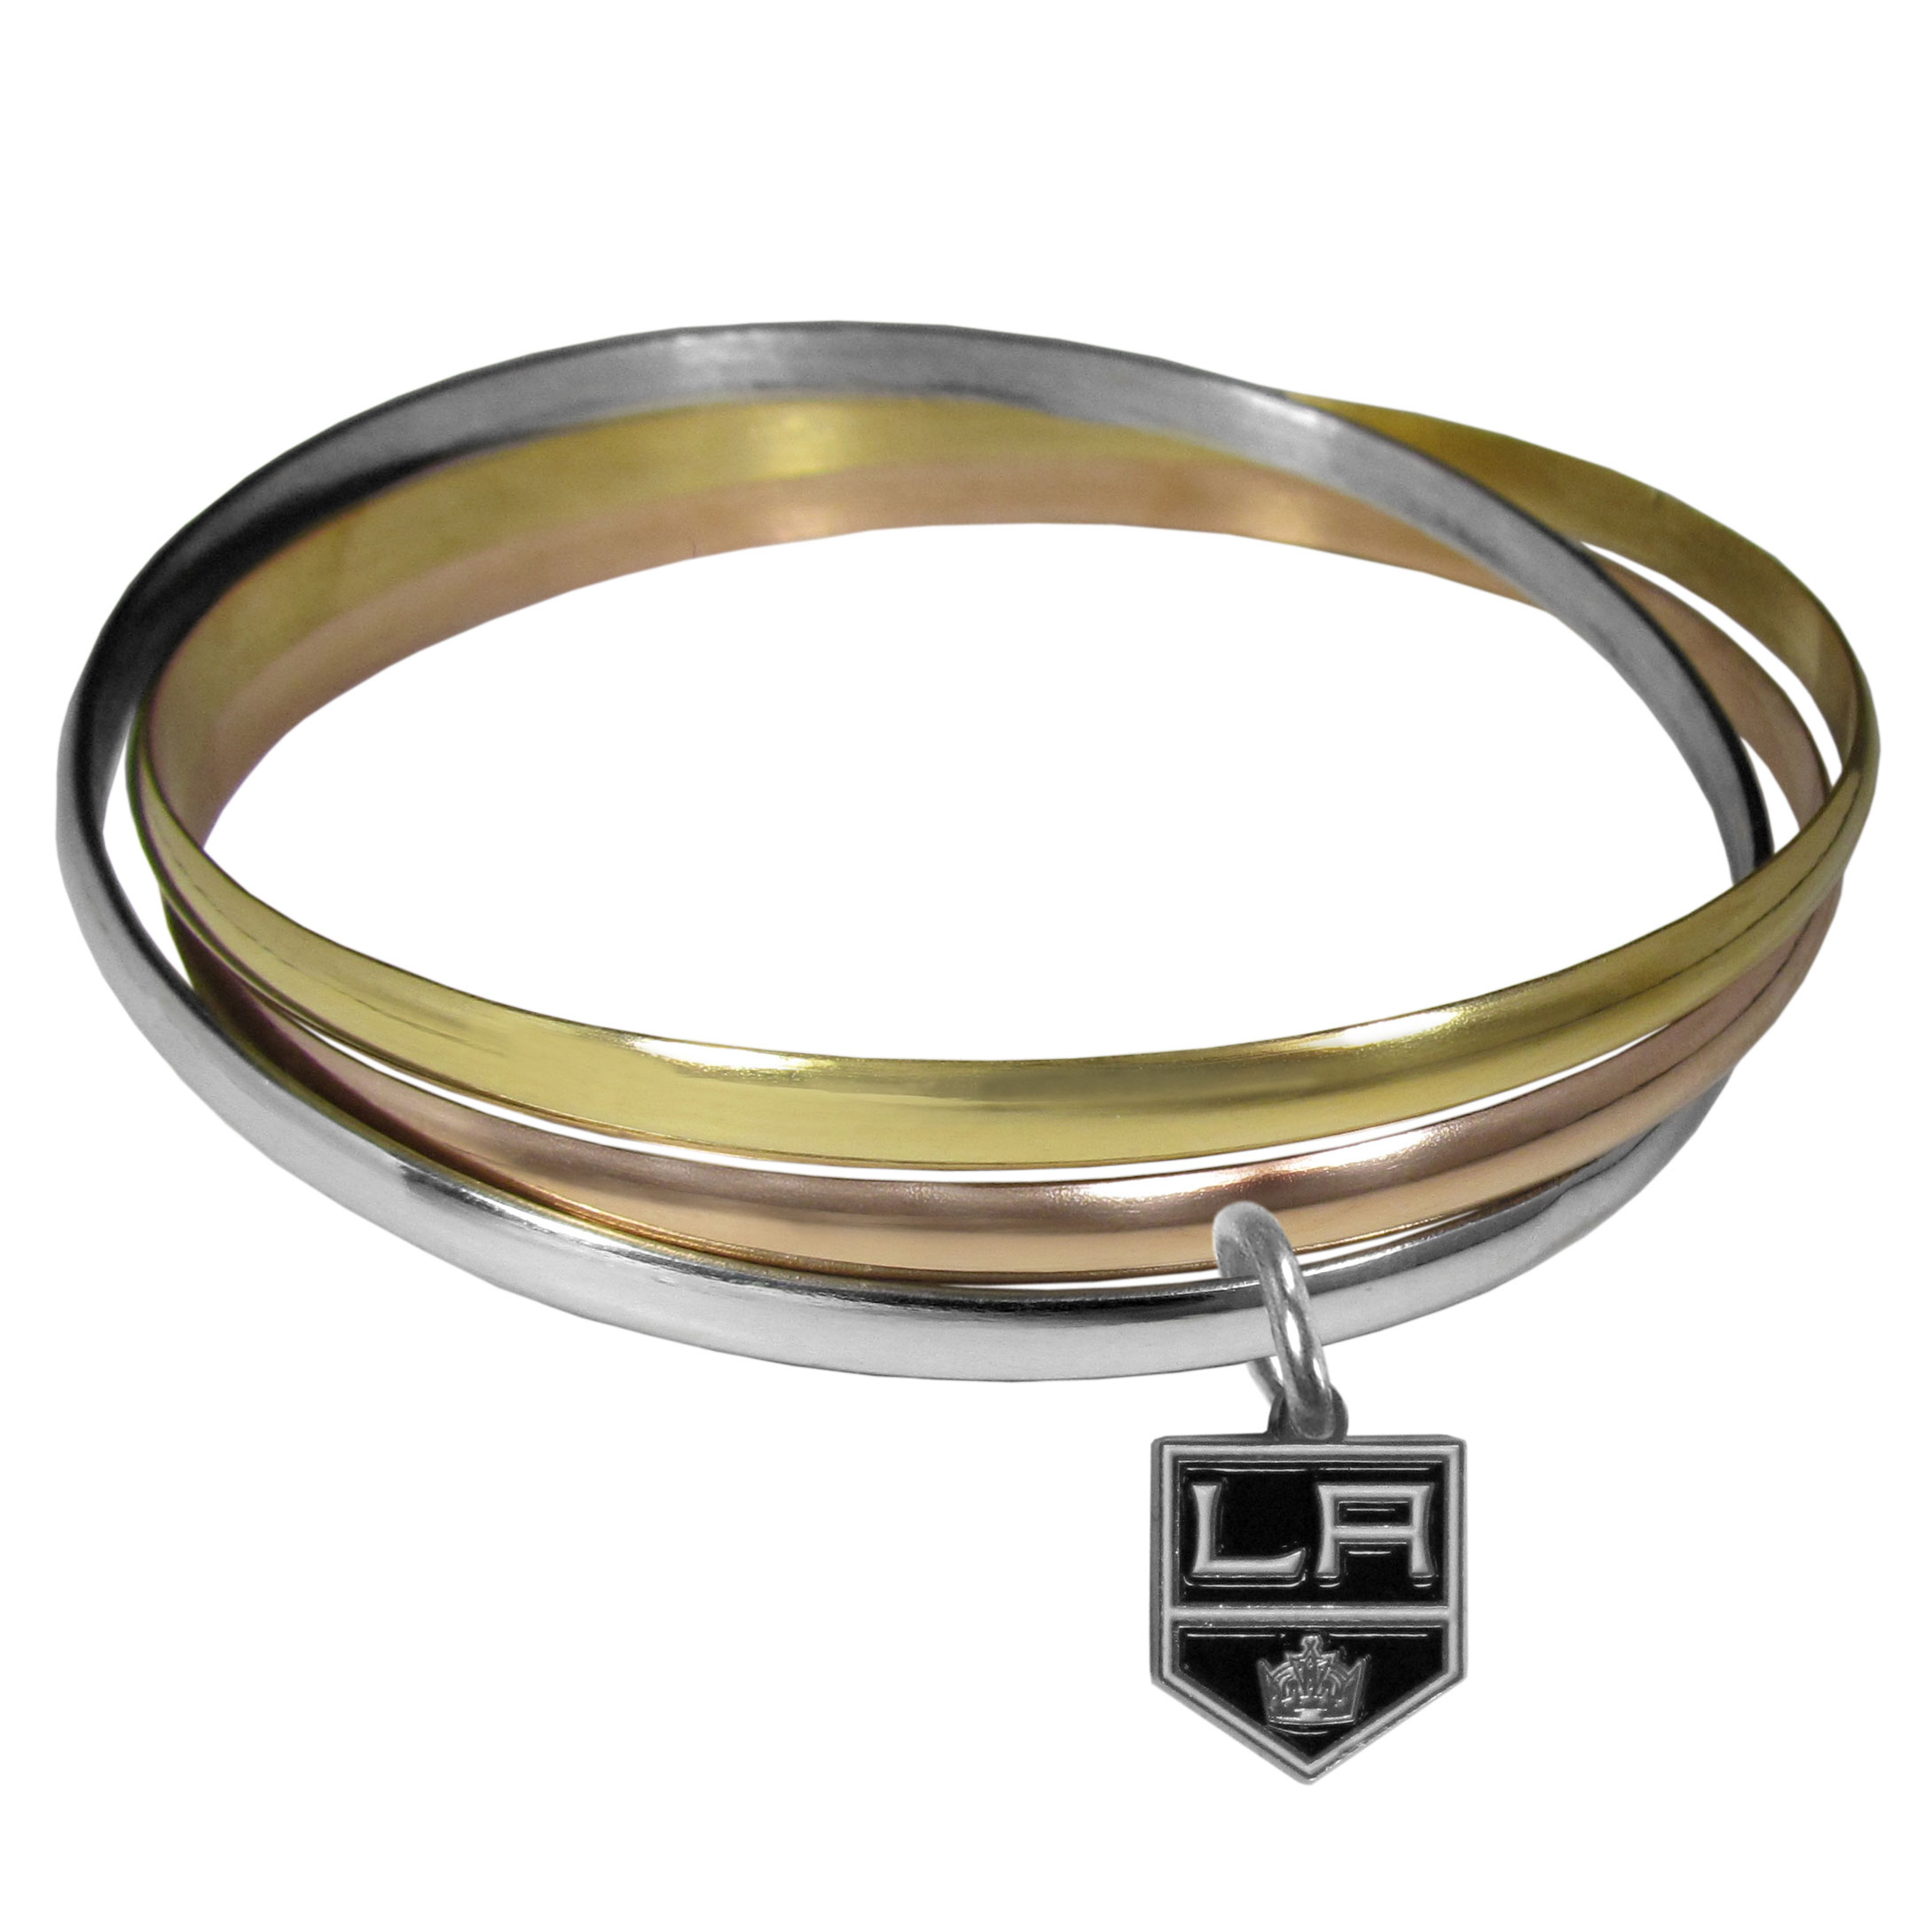 Los Angeles Kings® Tri-color Bangle Bracelet - These beautiful bangles come in a interlocking style and feature a fully cast Los Angeles Kings® charm with enameled team colors. The bracelet has a silver toned bangle, gold tone bangle and brass toned bangle.